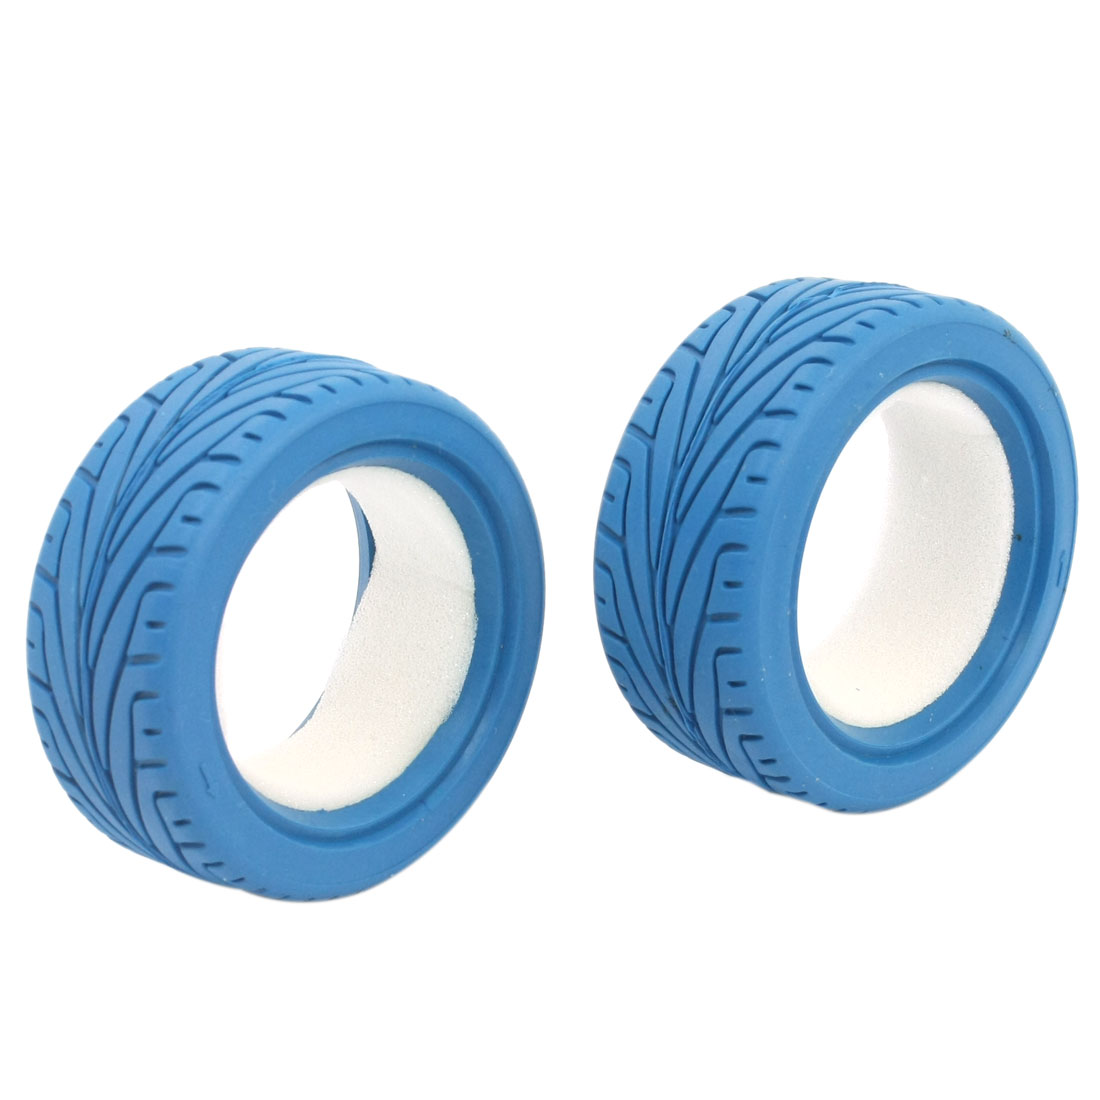 2pcs Blue DIY 1:10 Scale 65mm Wheel Tire for RC Model Flat Racing Car